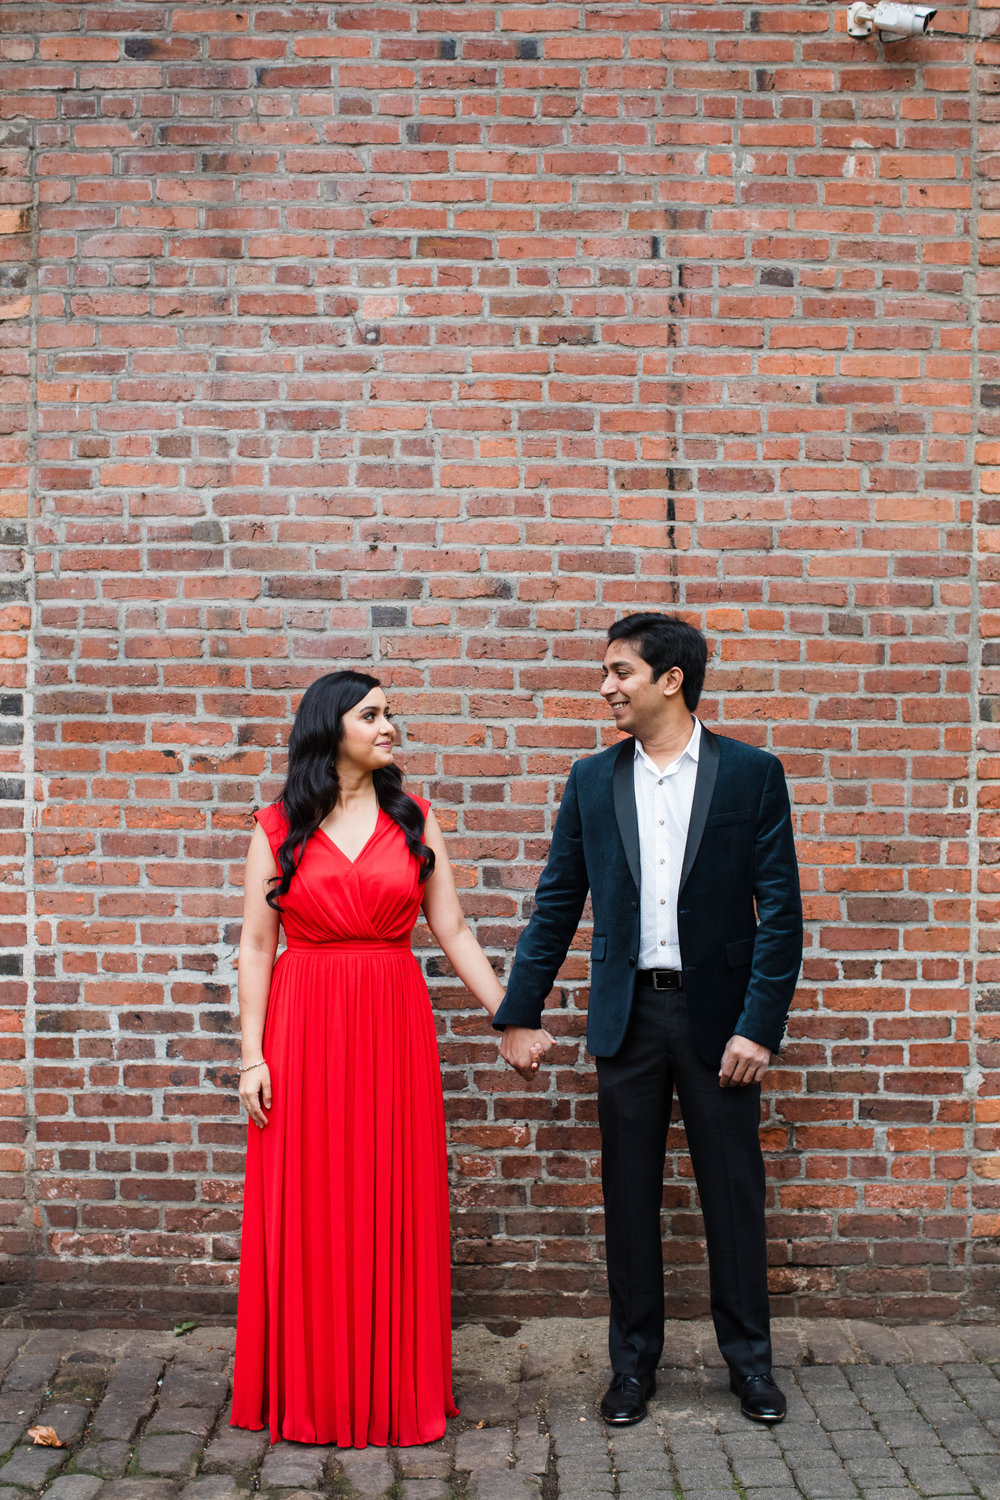 Sushat+Nancy_Engagement_Pioneer+Square_Sculpture+Park_Seattle_Oct2016_APW78.jpg